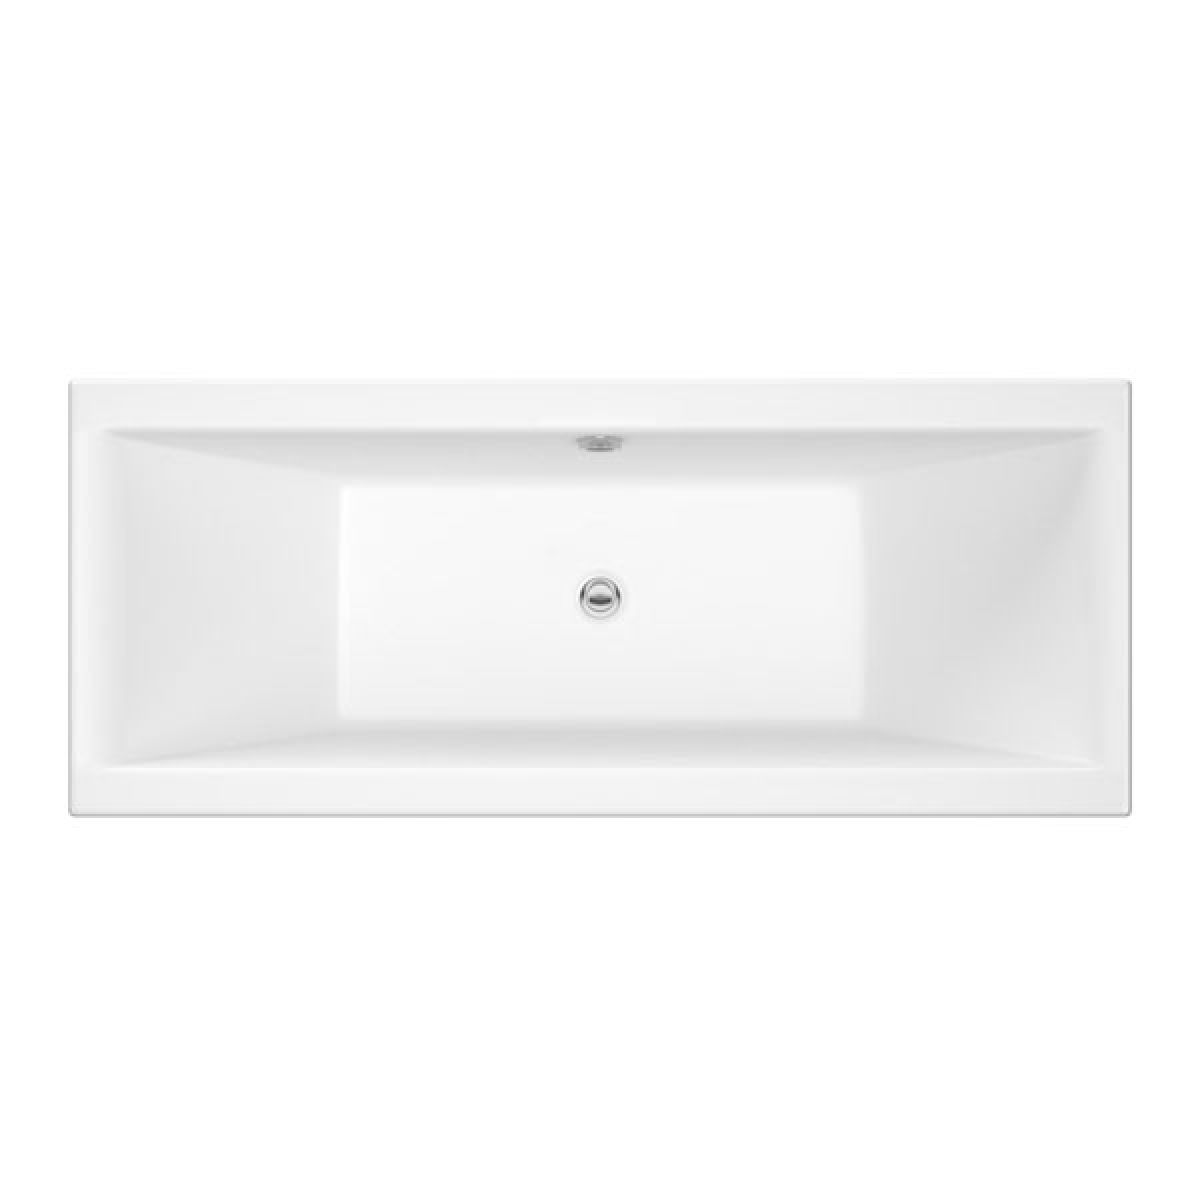 Premier Asselby Square Double Ended Bath